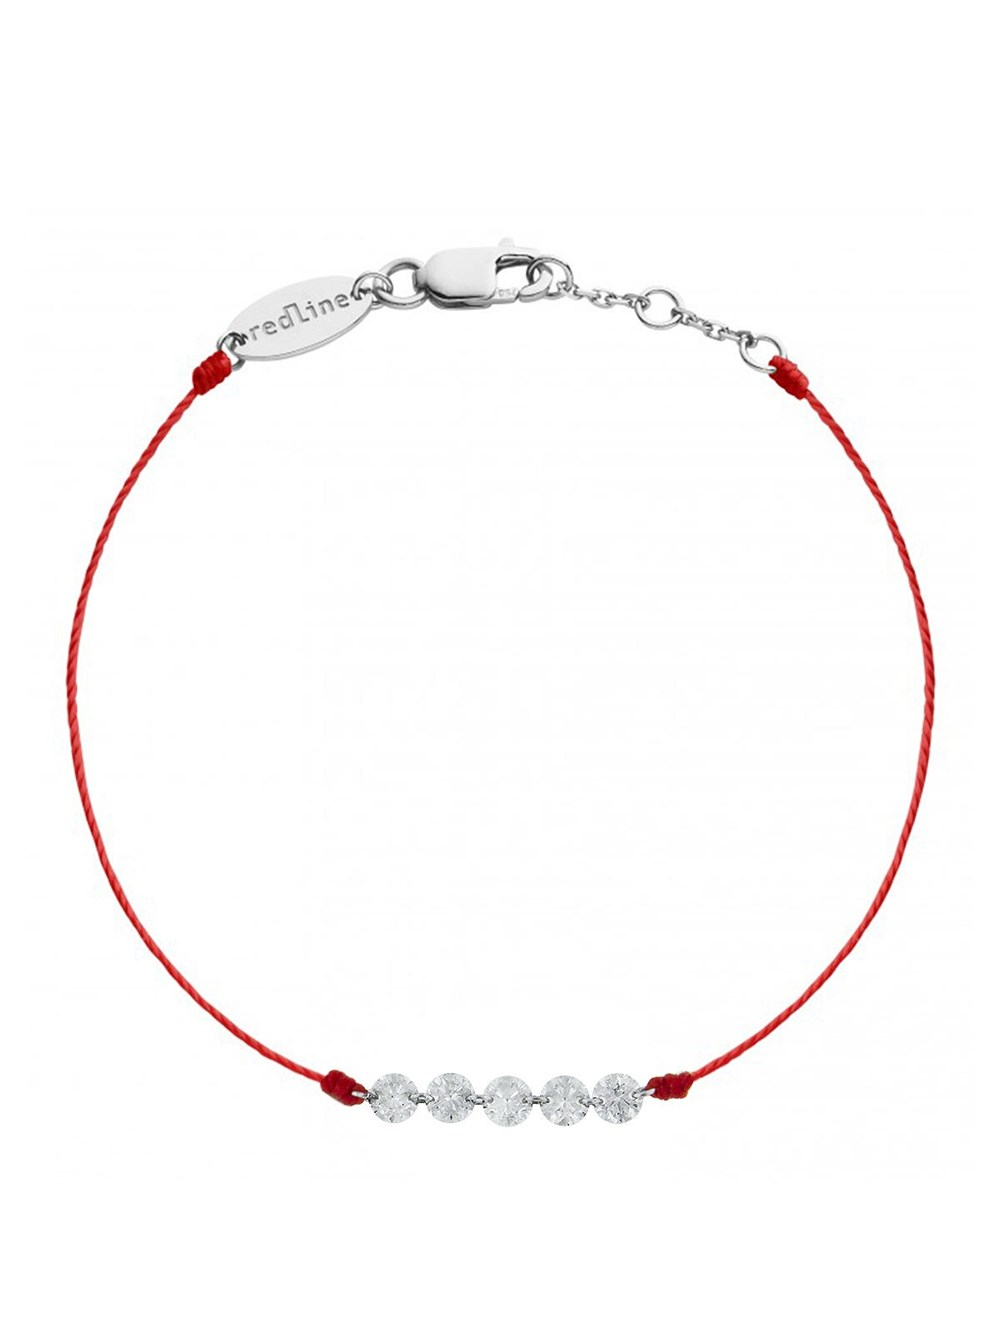 Pin On Red String Protection Bracelets